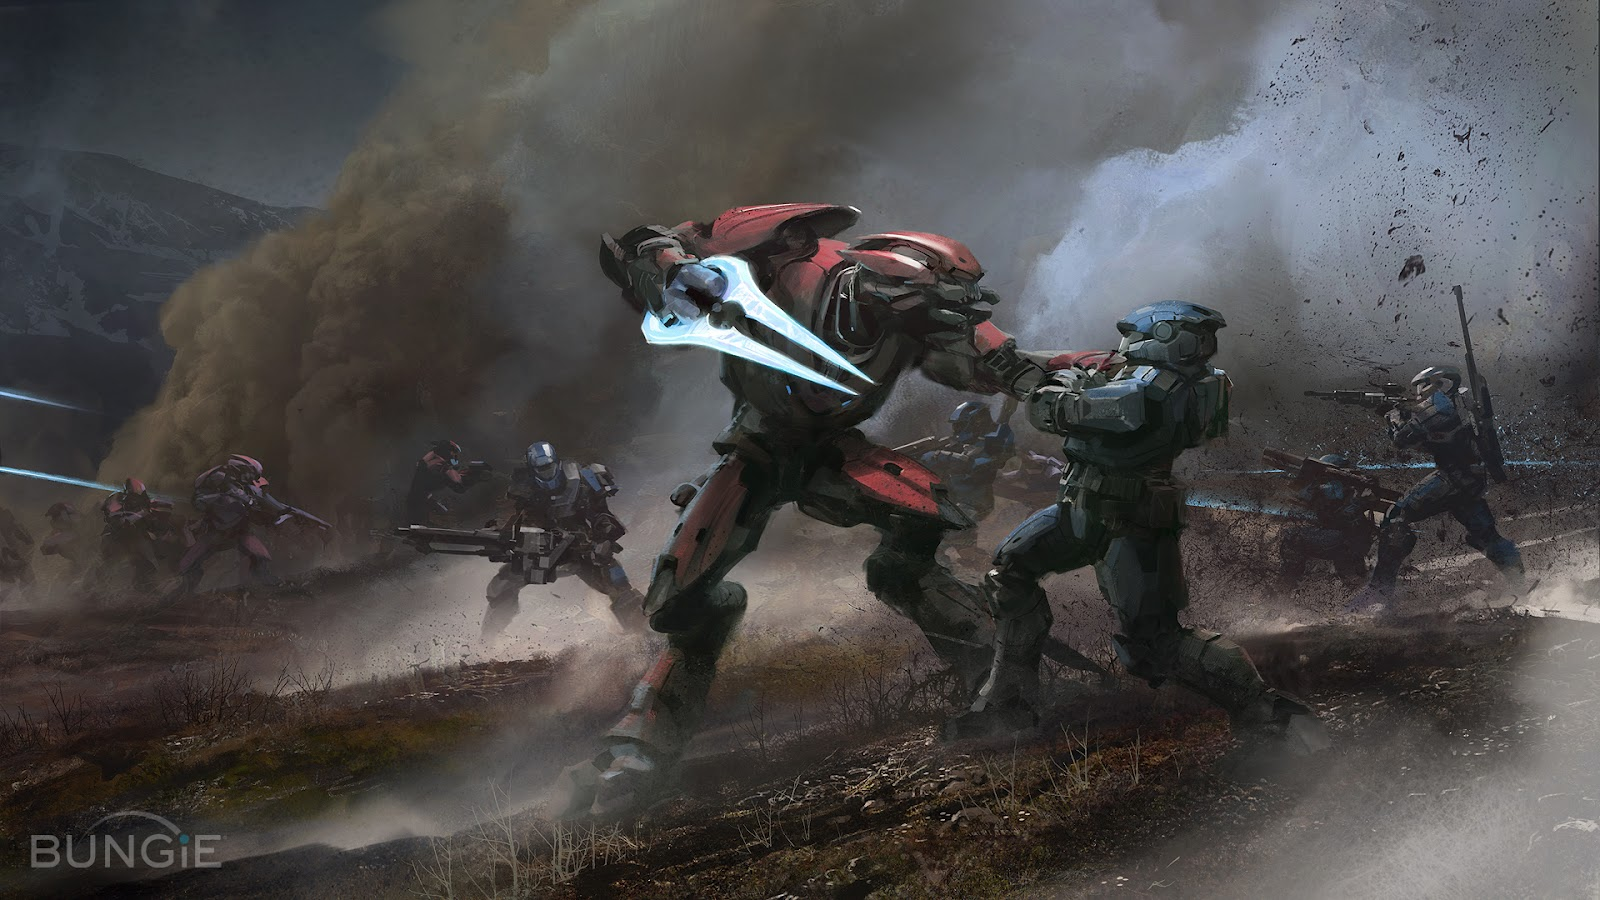 halo reach wallpaper background bungie microsoft xbox fps first person 1600x900